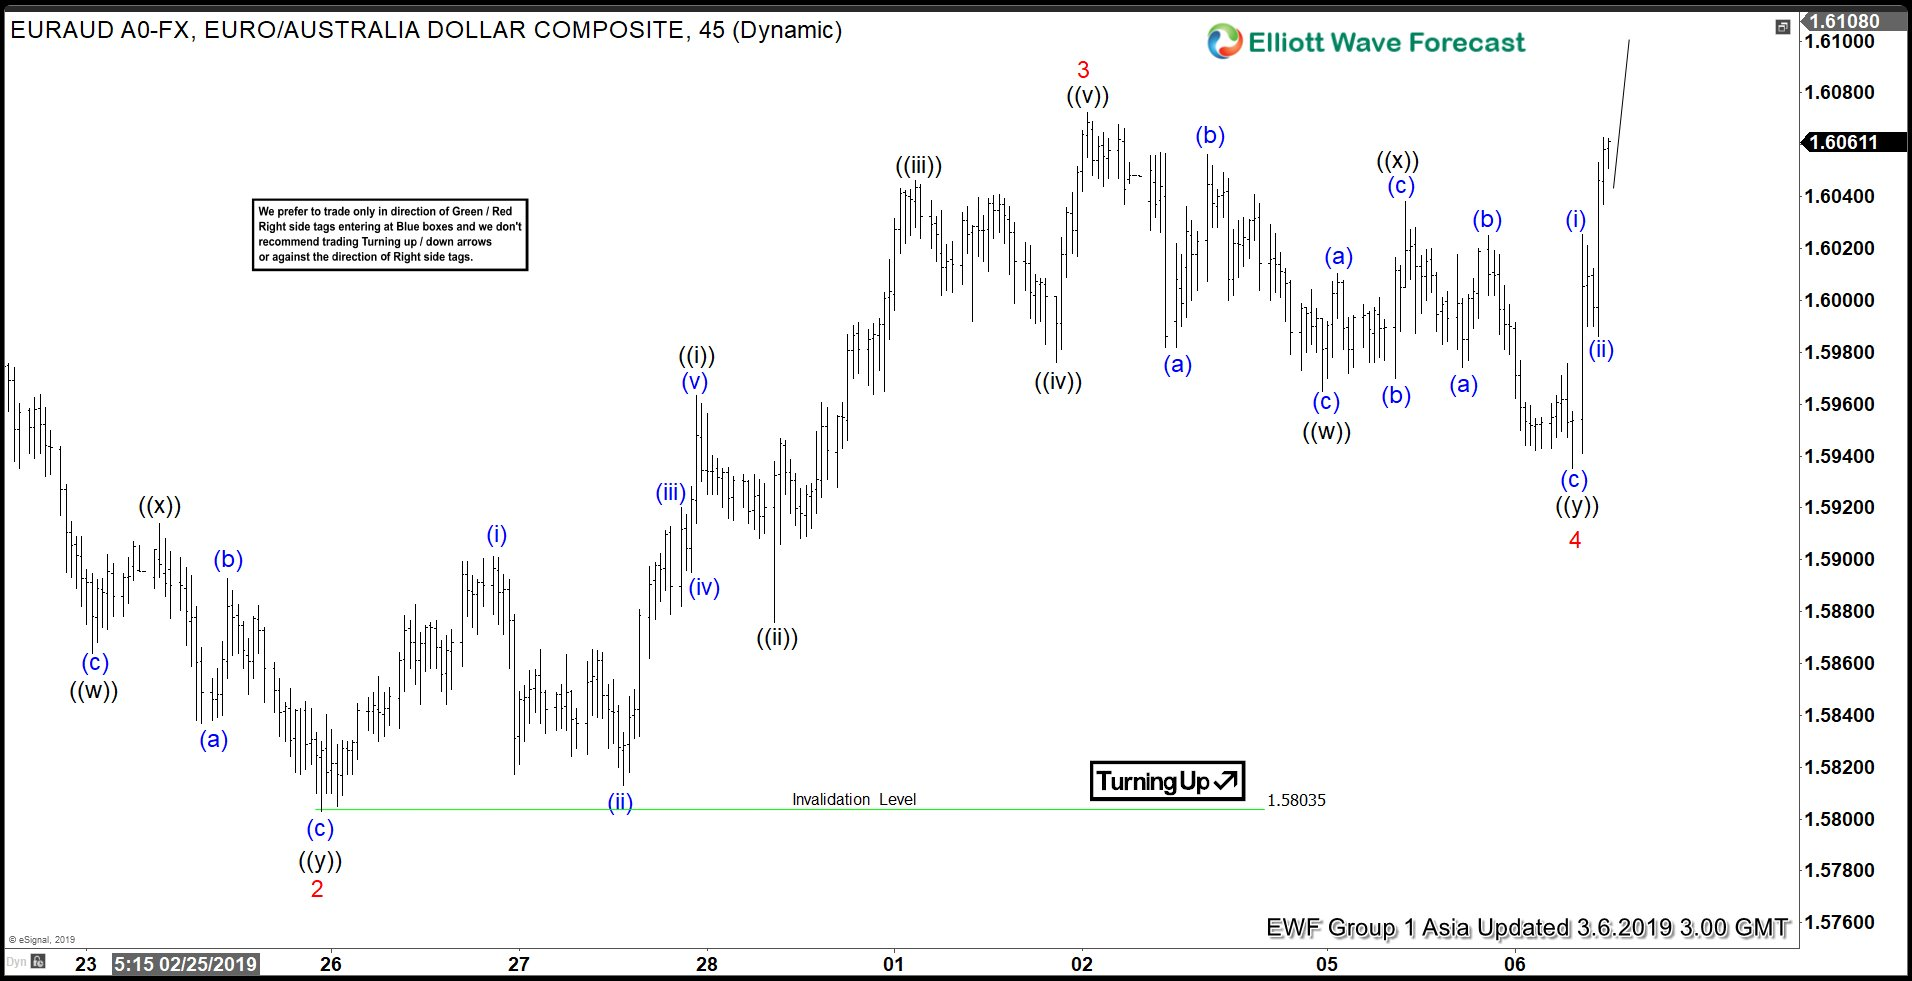 Elliott Wave View: Further Strength in EURAUD